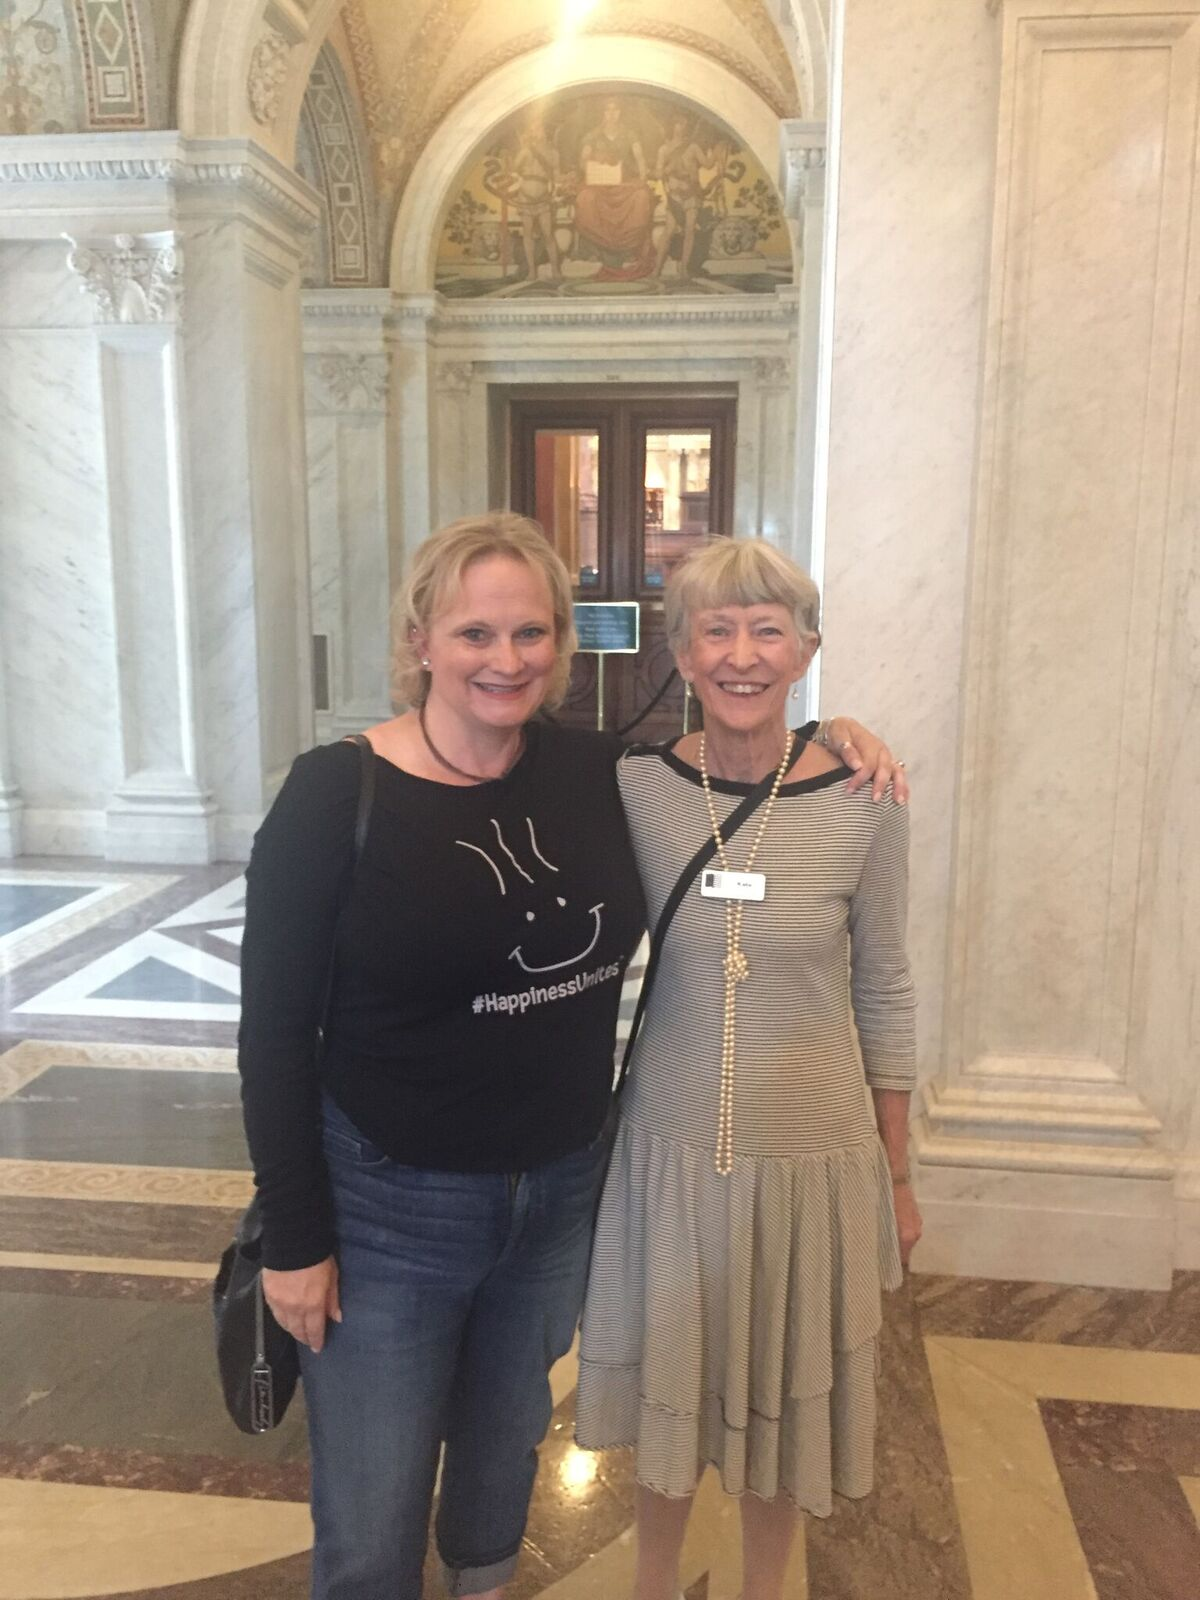 Library of Congress, SOHP.com, Pamela Gail Johnson, #HappinessUnites Tour